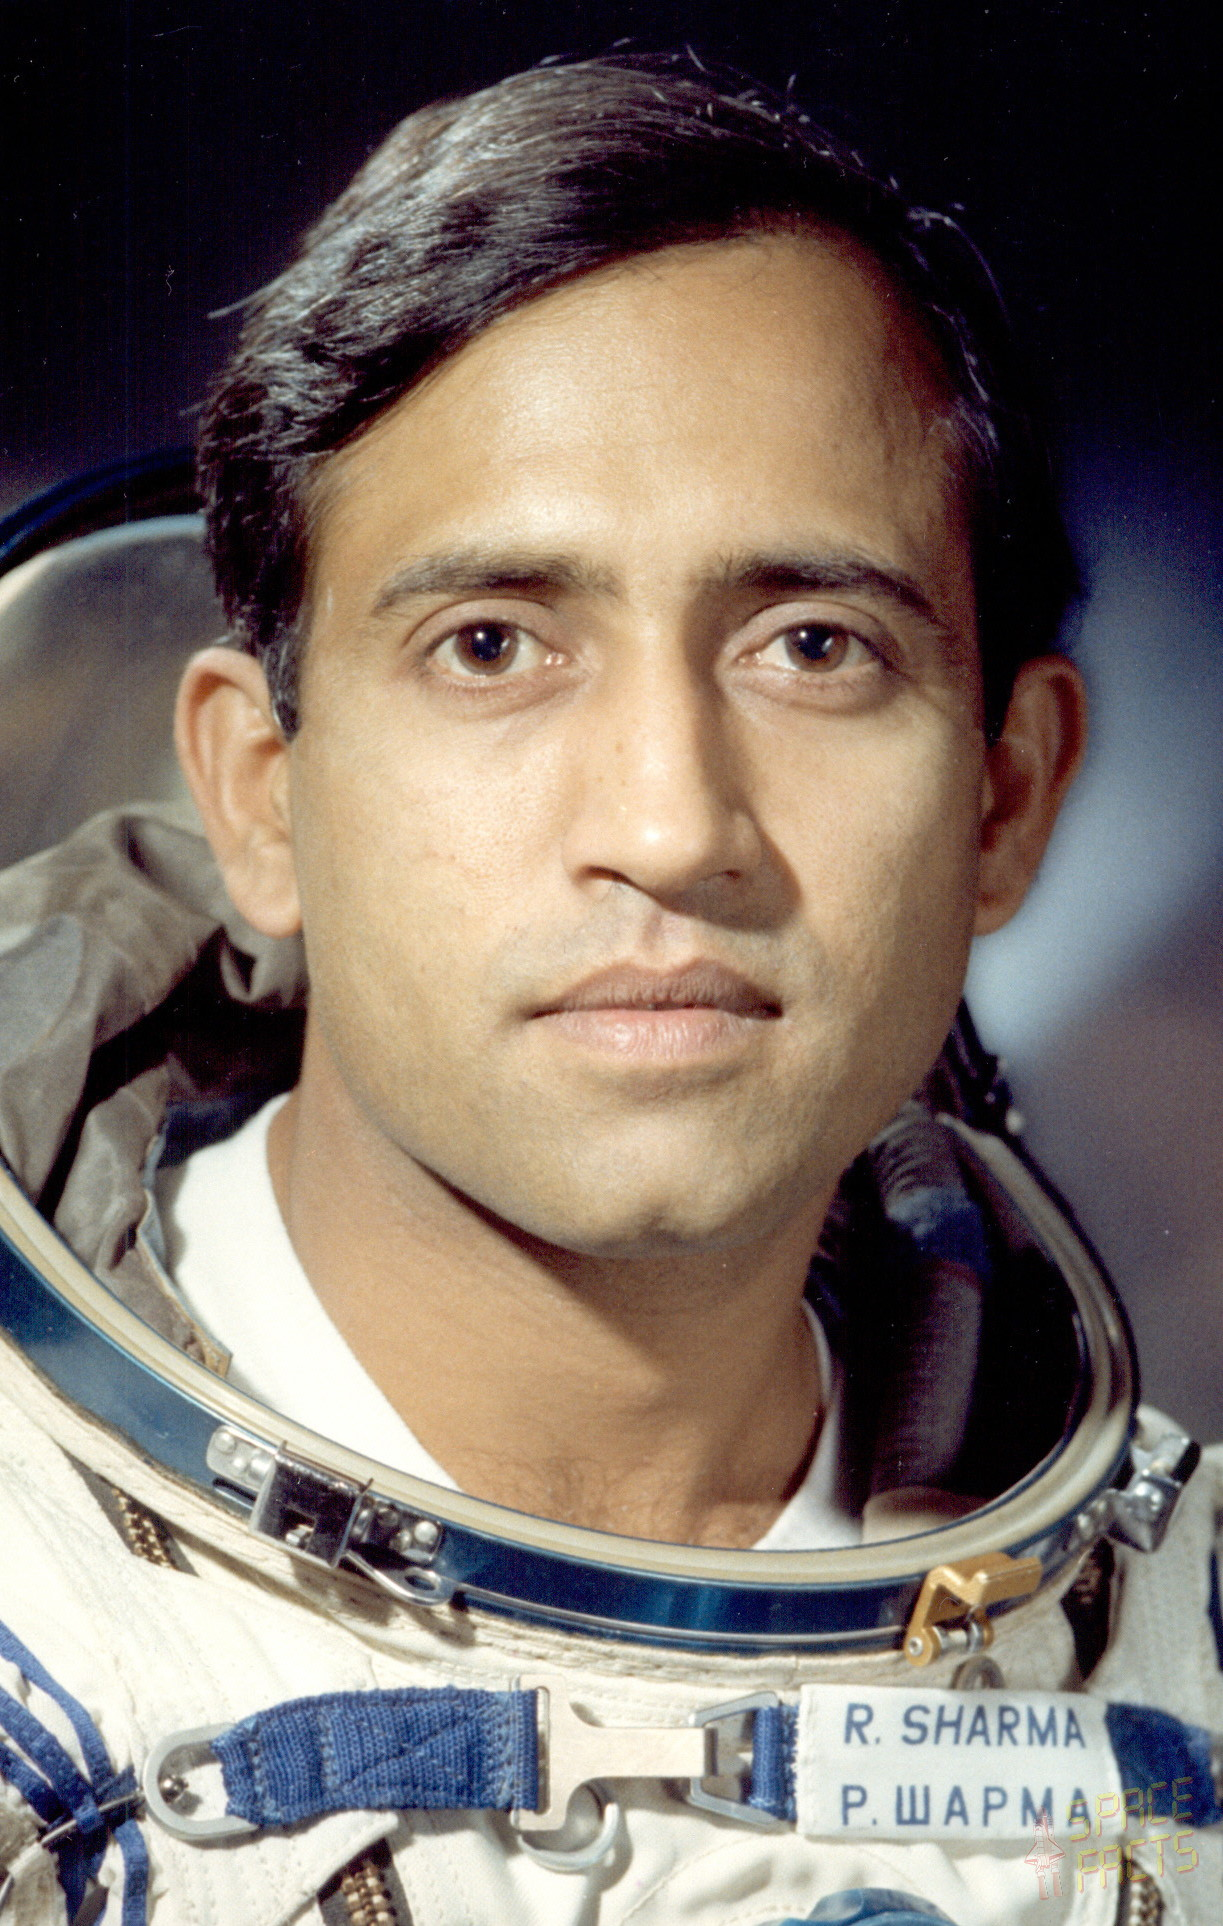 photos of rakesh sharma in space shuttle -#main